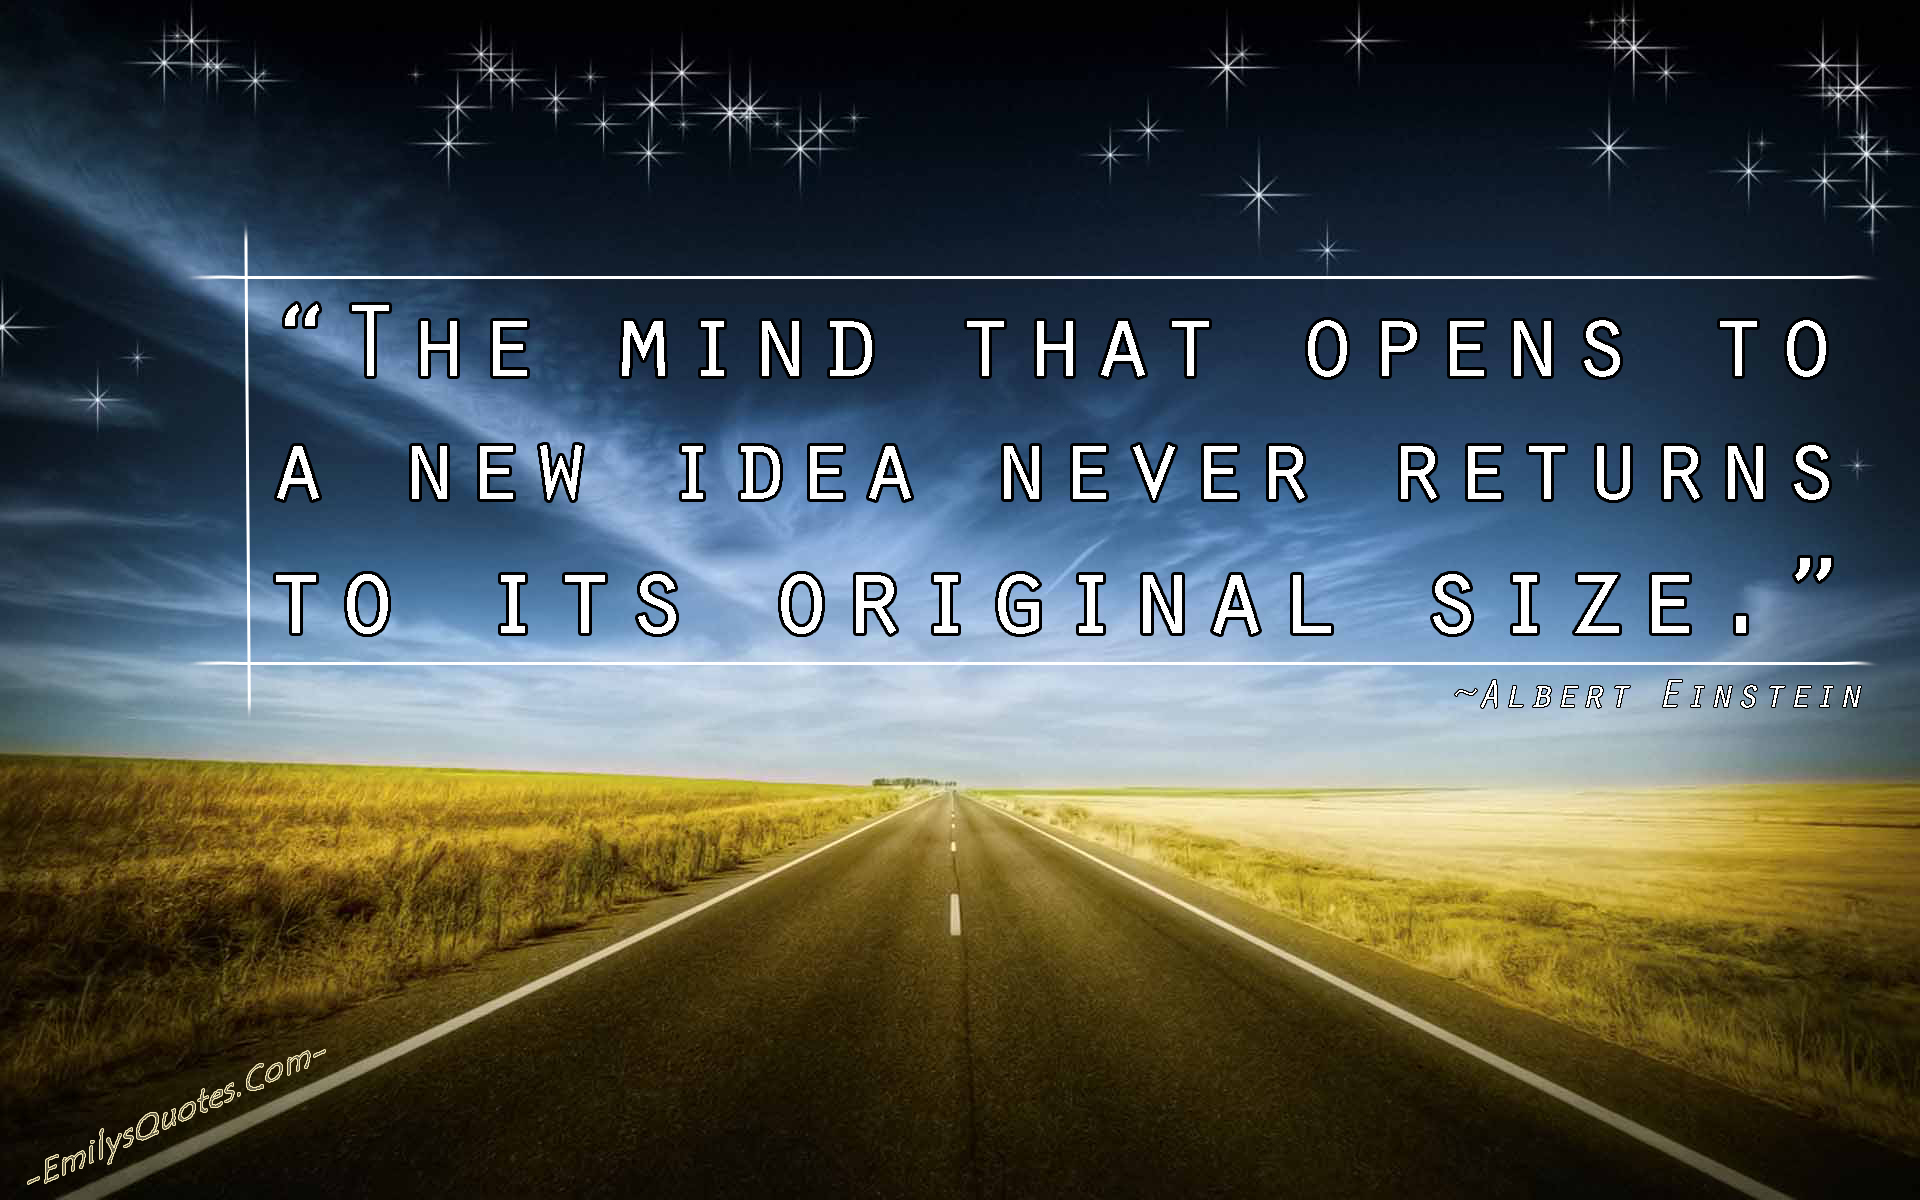 Uplifting Ideas: The Mind That Opens To A New Idea Never Returns To Its